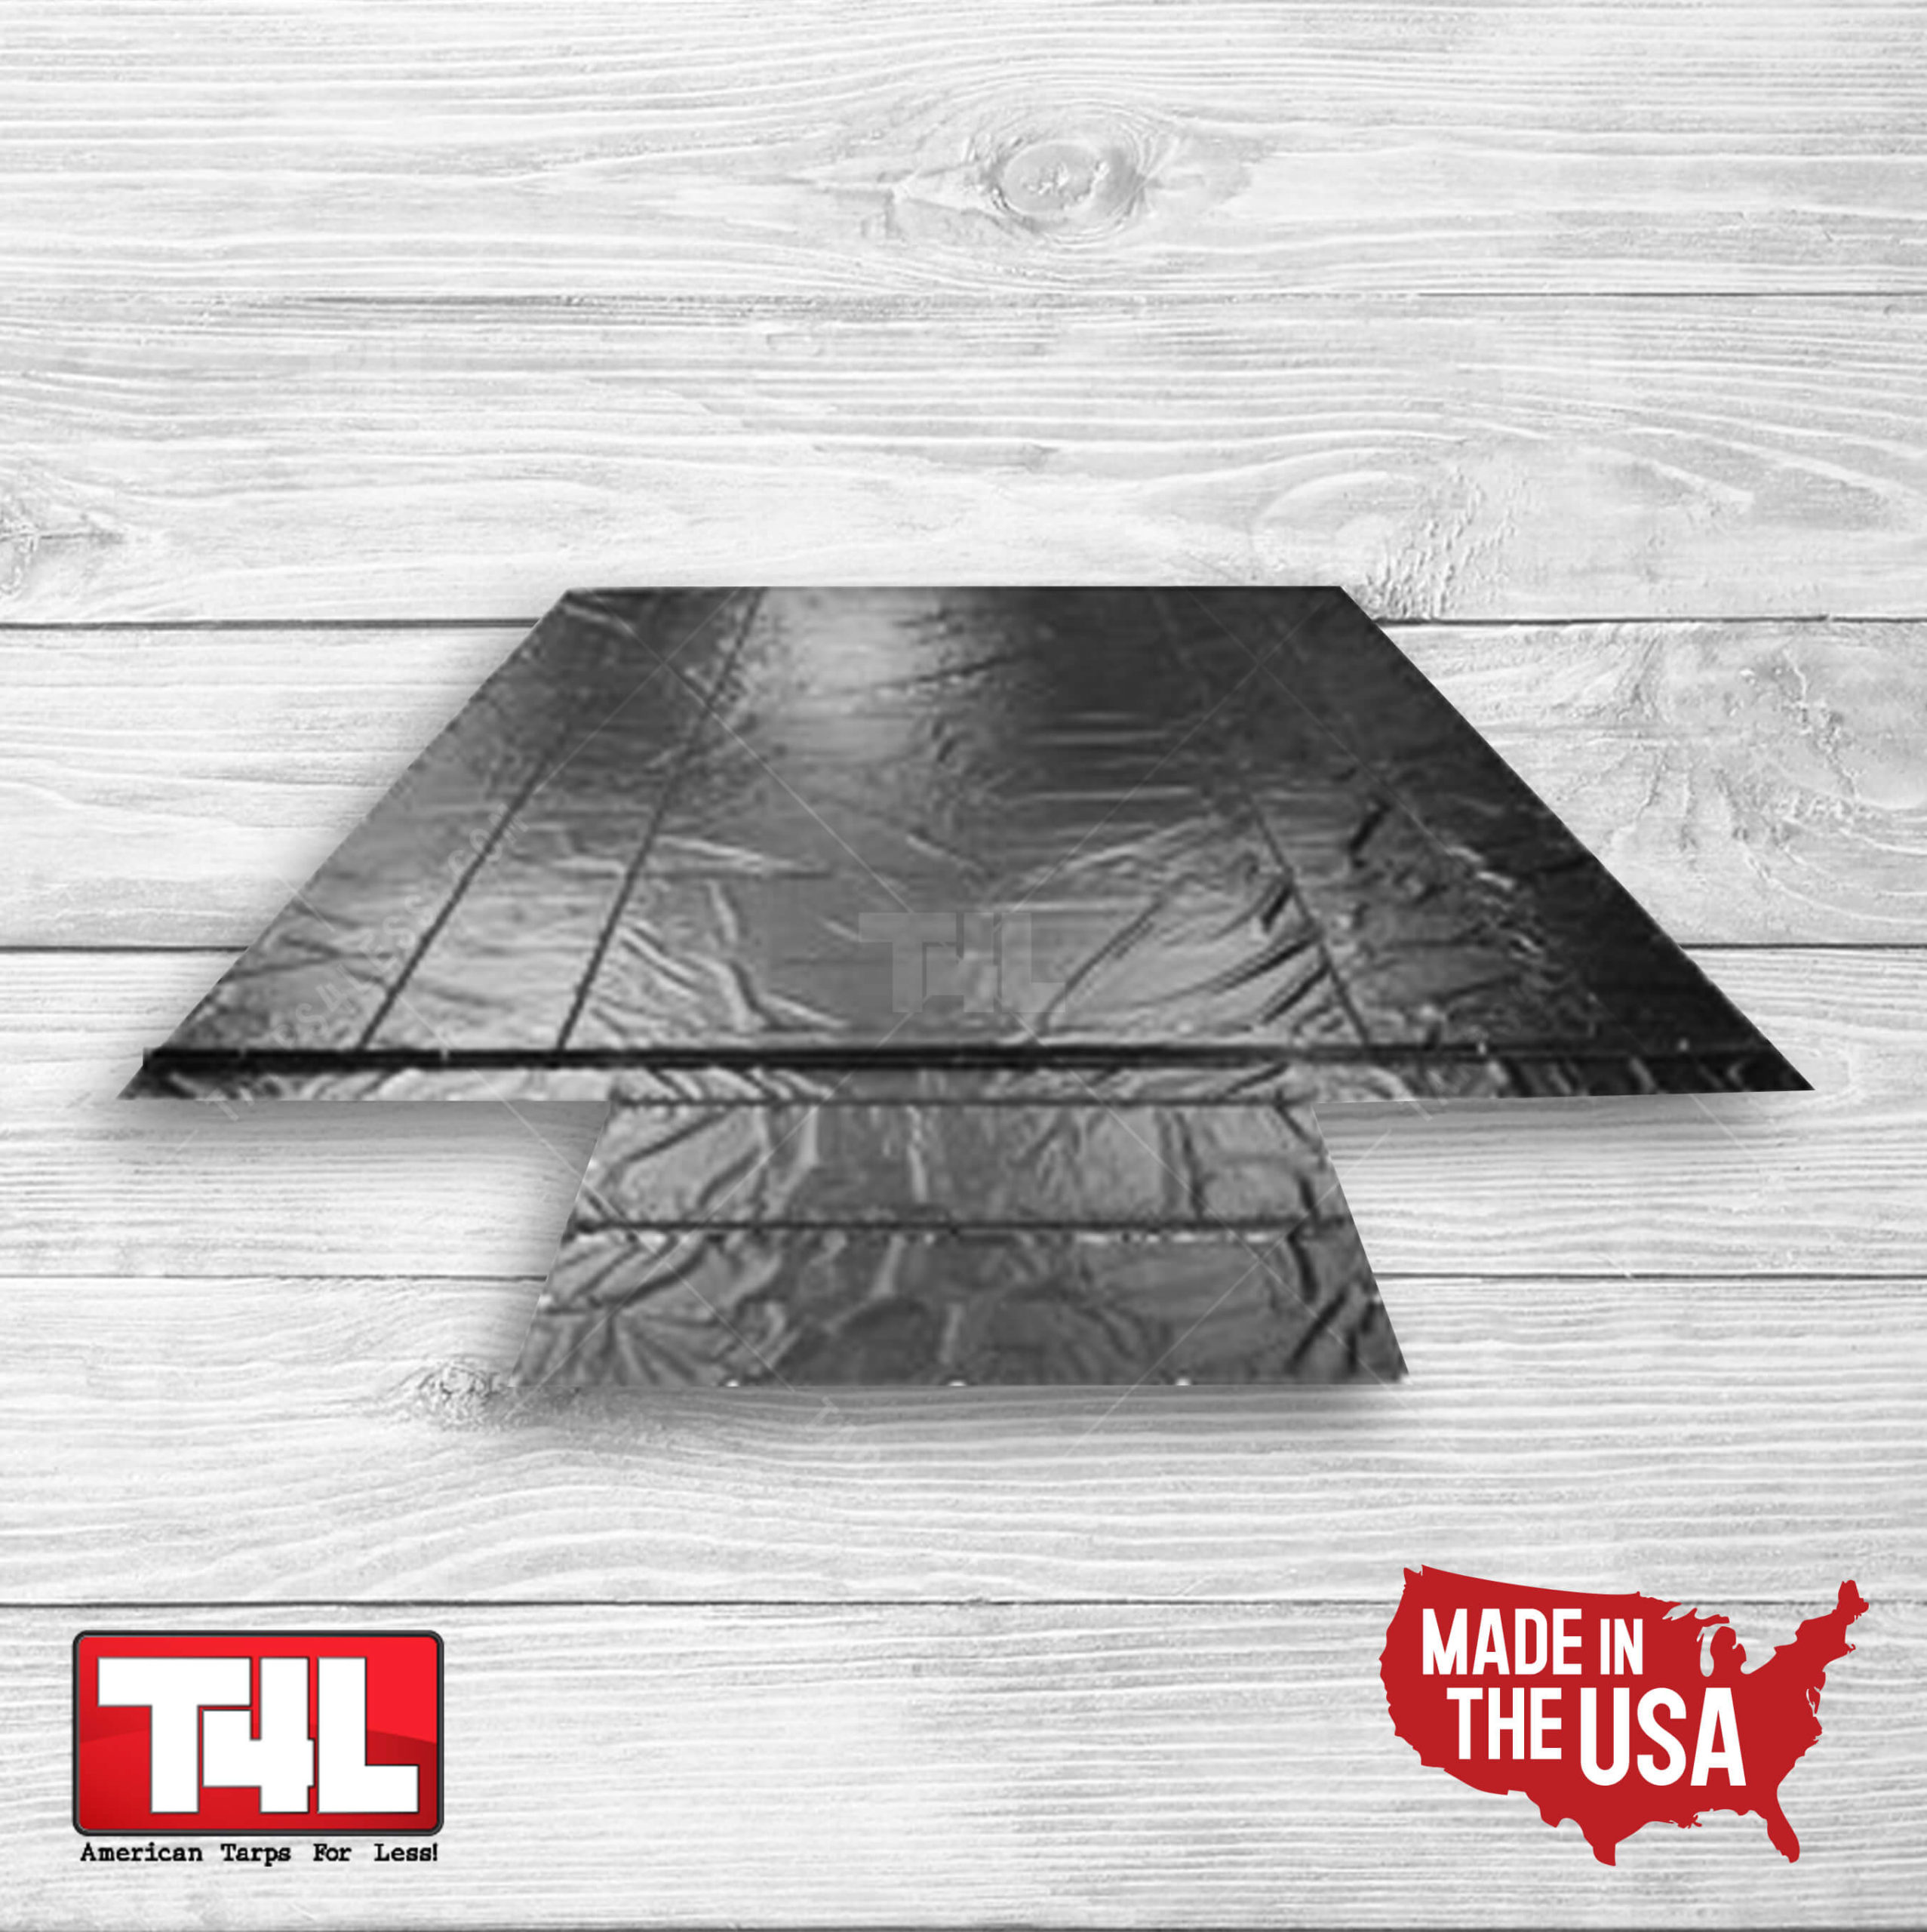 3 Piece Wallboard Tarp Set (6' Drops)